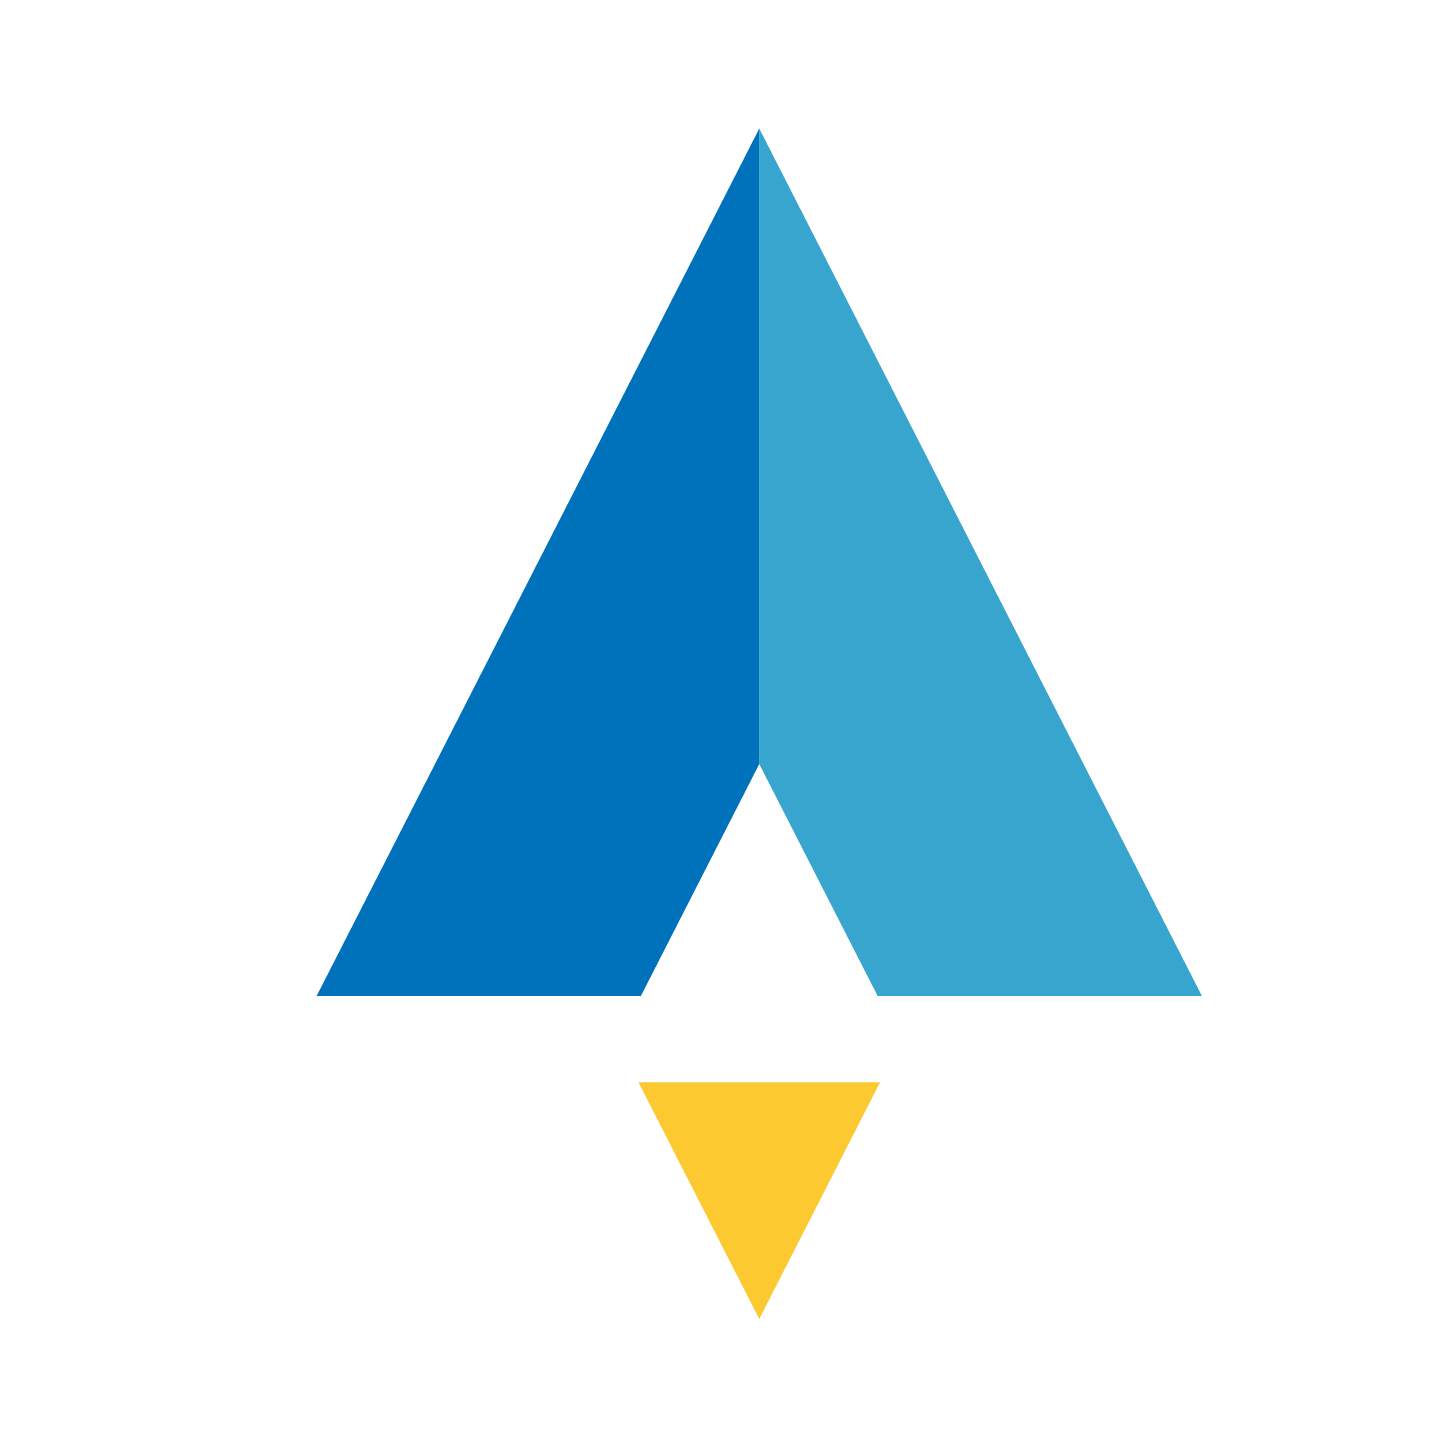 launch rocket logo